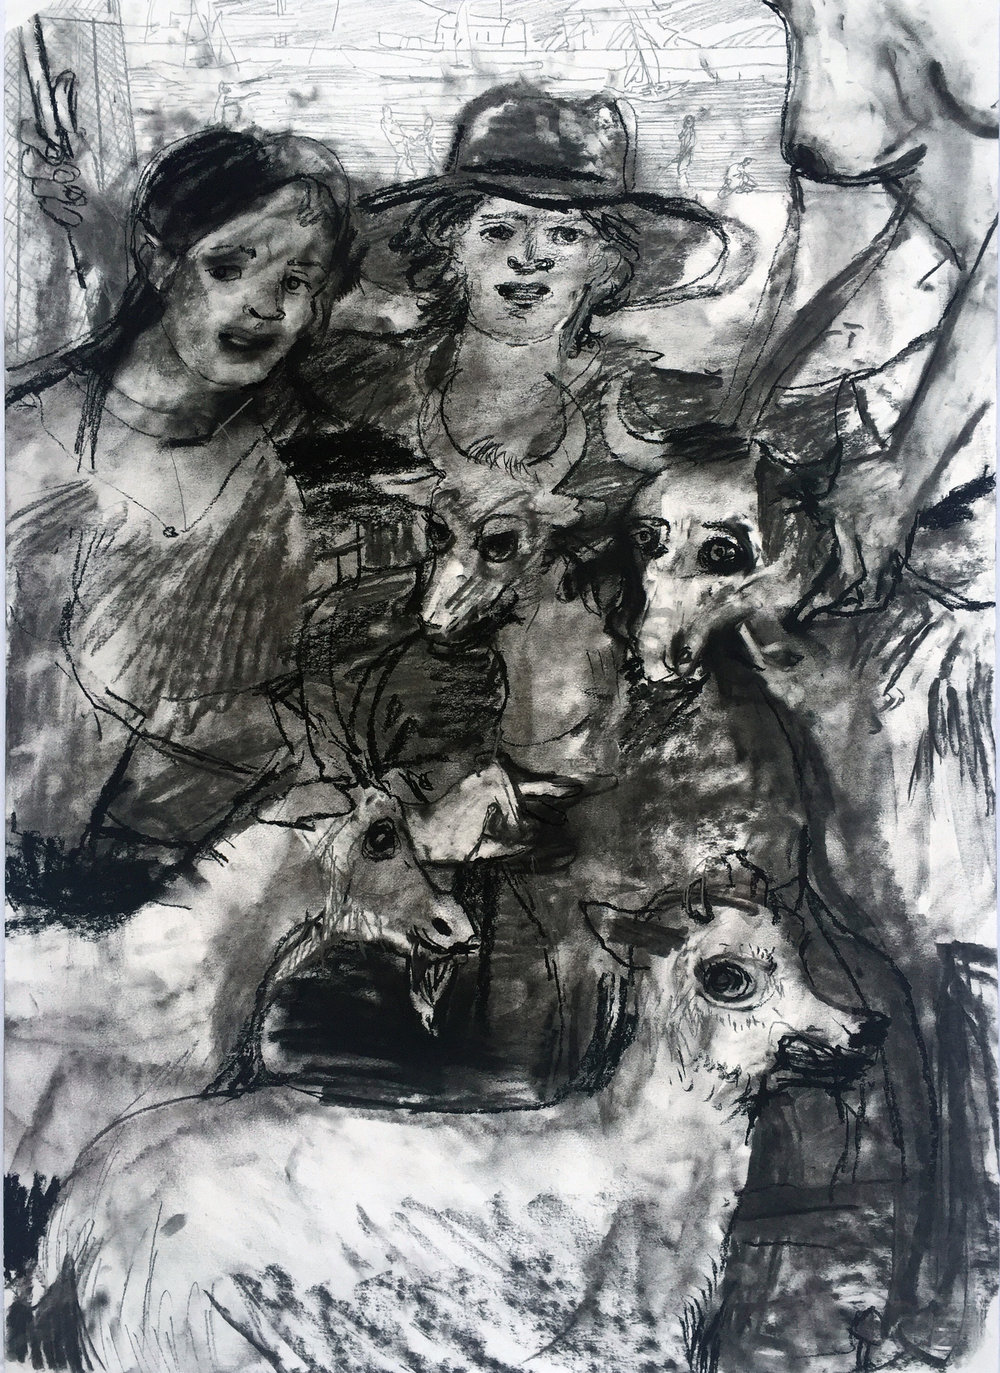 Heard 18 by 24 inches charcoal on paper 2016.jpg